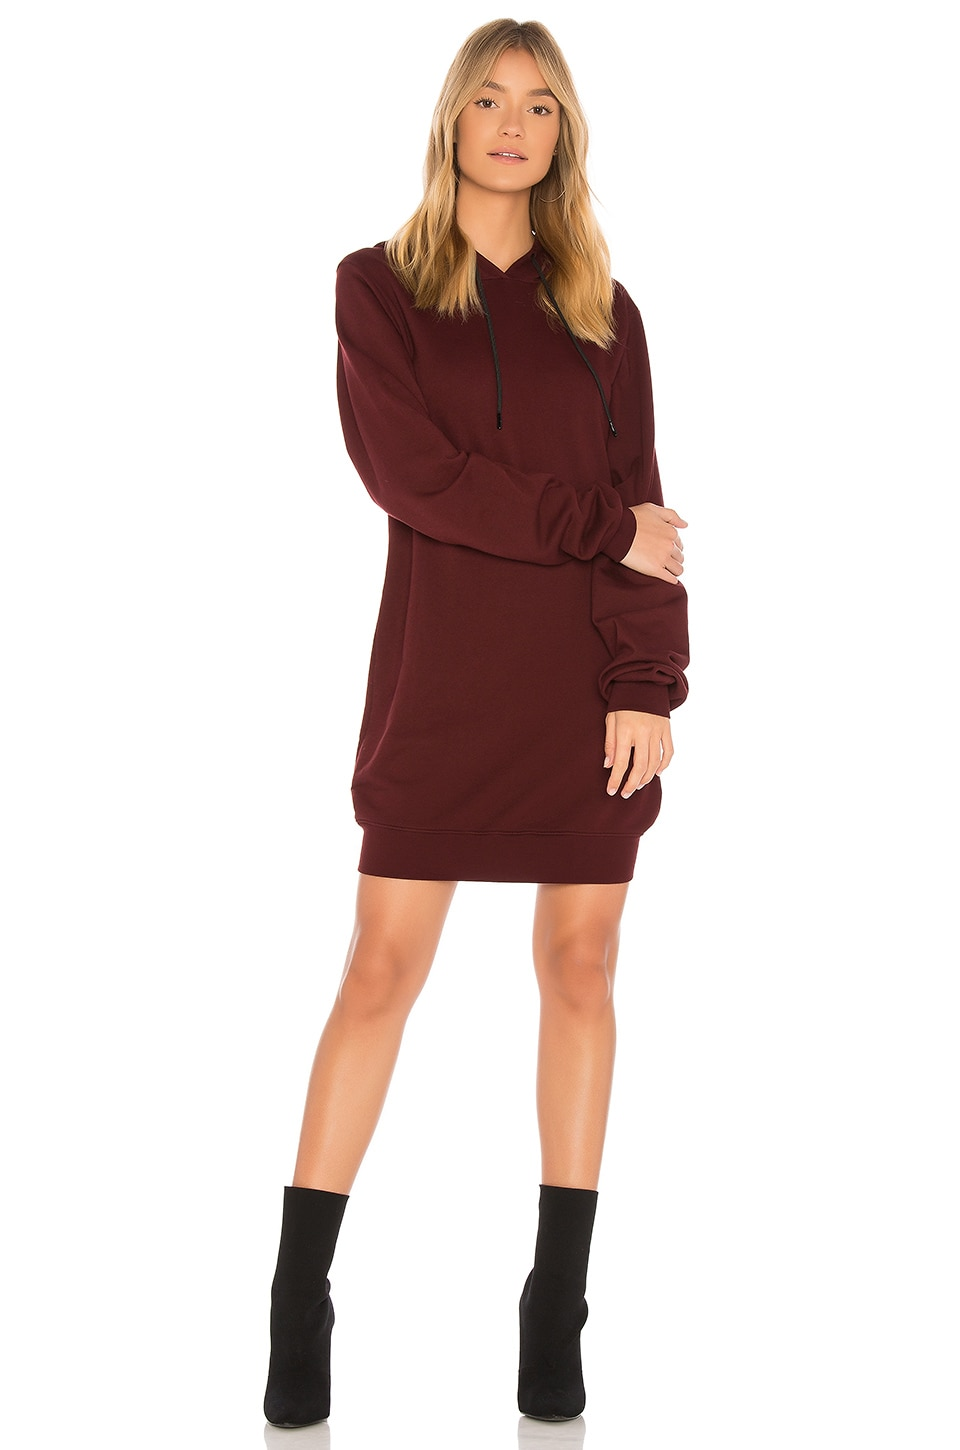 The Milan Backless Hoodie Dress by COTTON CITIZEN